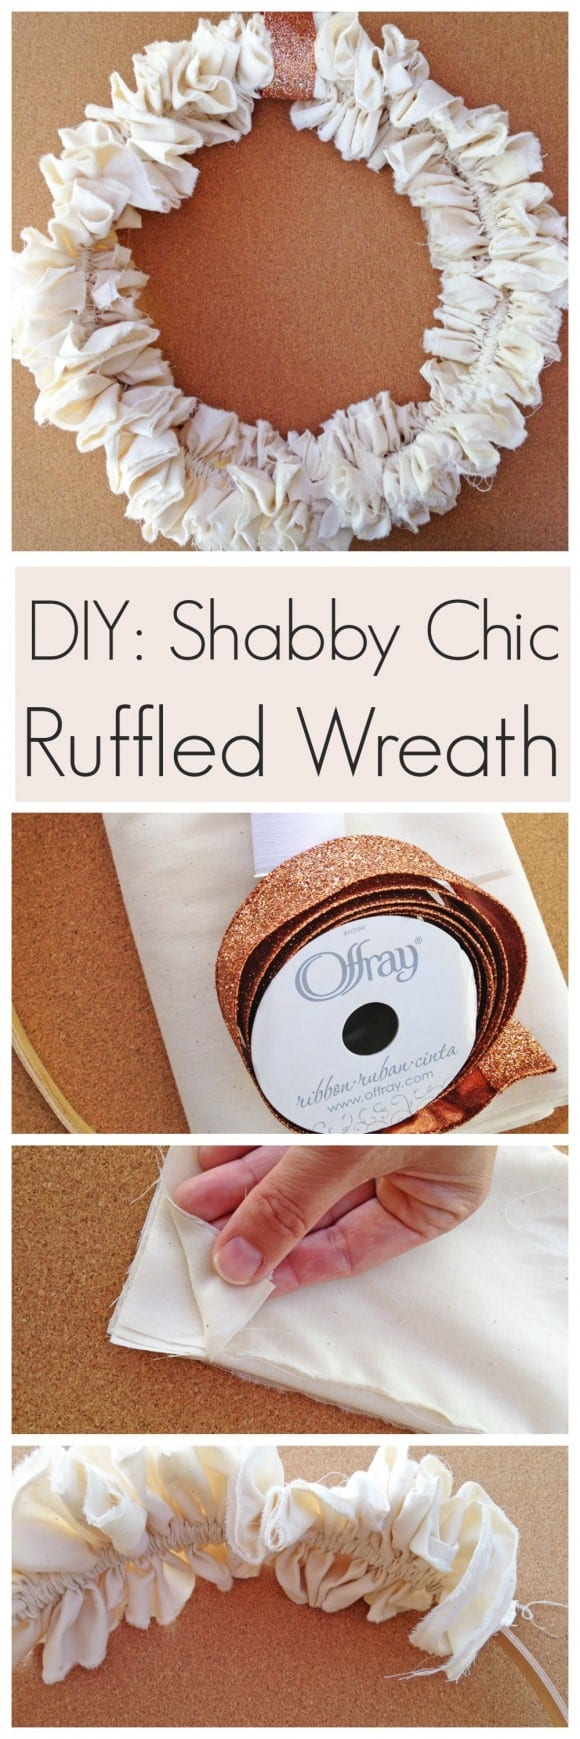 Shabby Chic Ruffled Wreath DIY | CatchMyParty.com